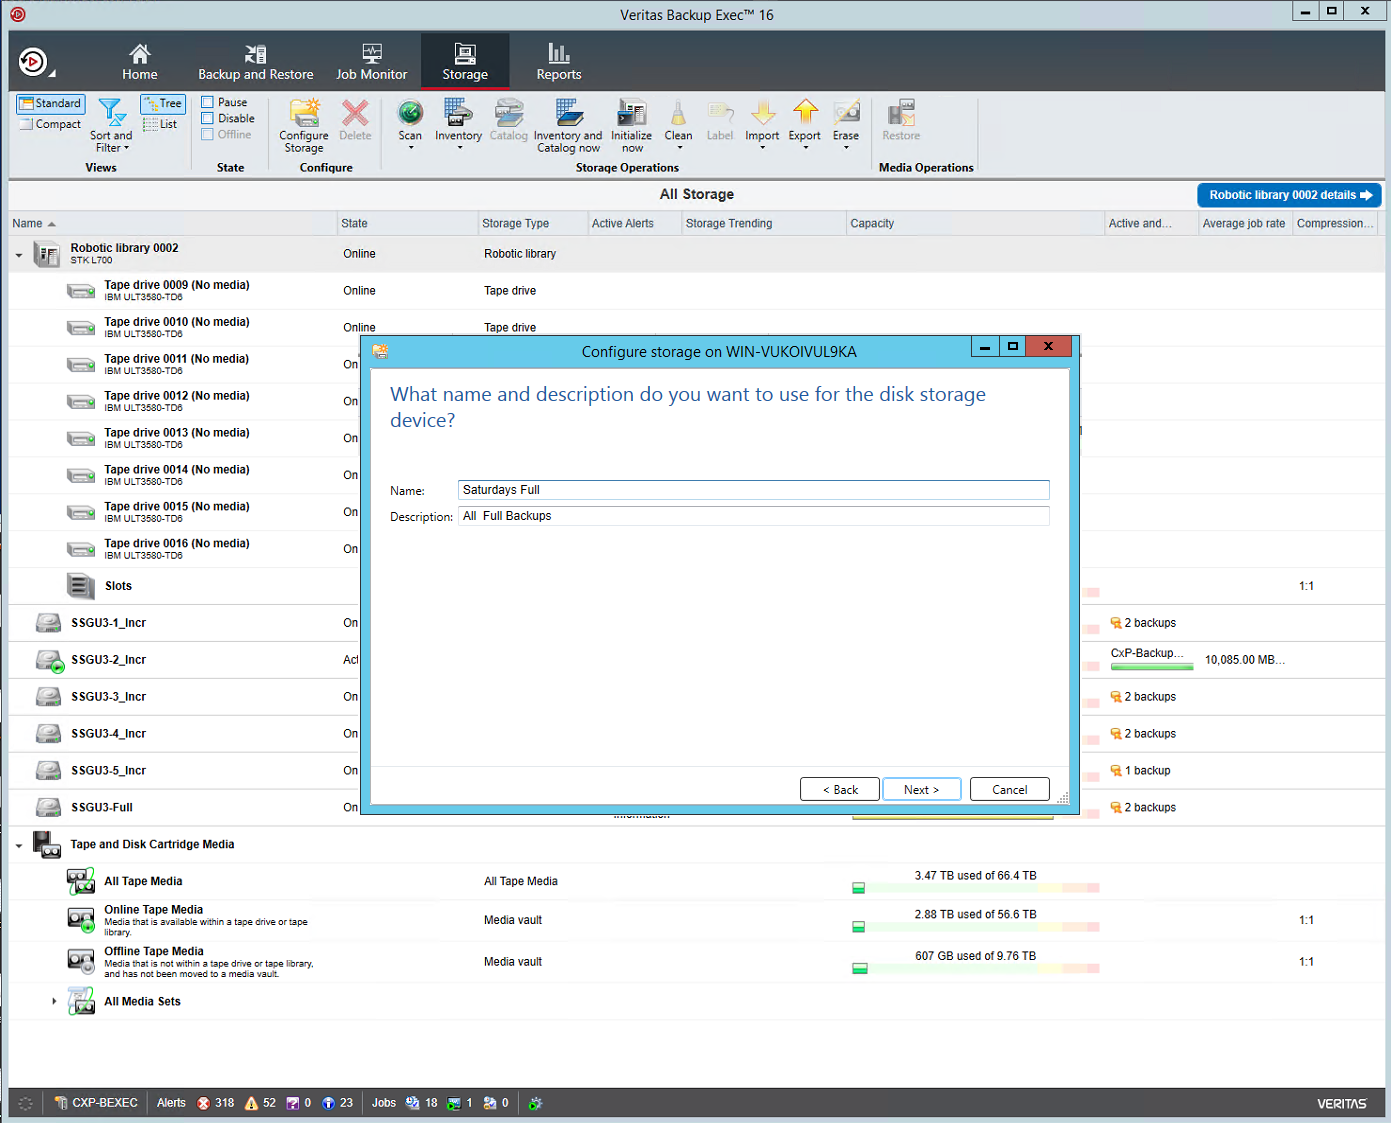 Fortunately, the veritas backup software works very well, and allows for a huge number of storage options